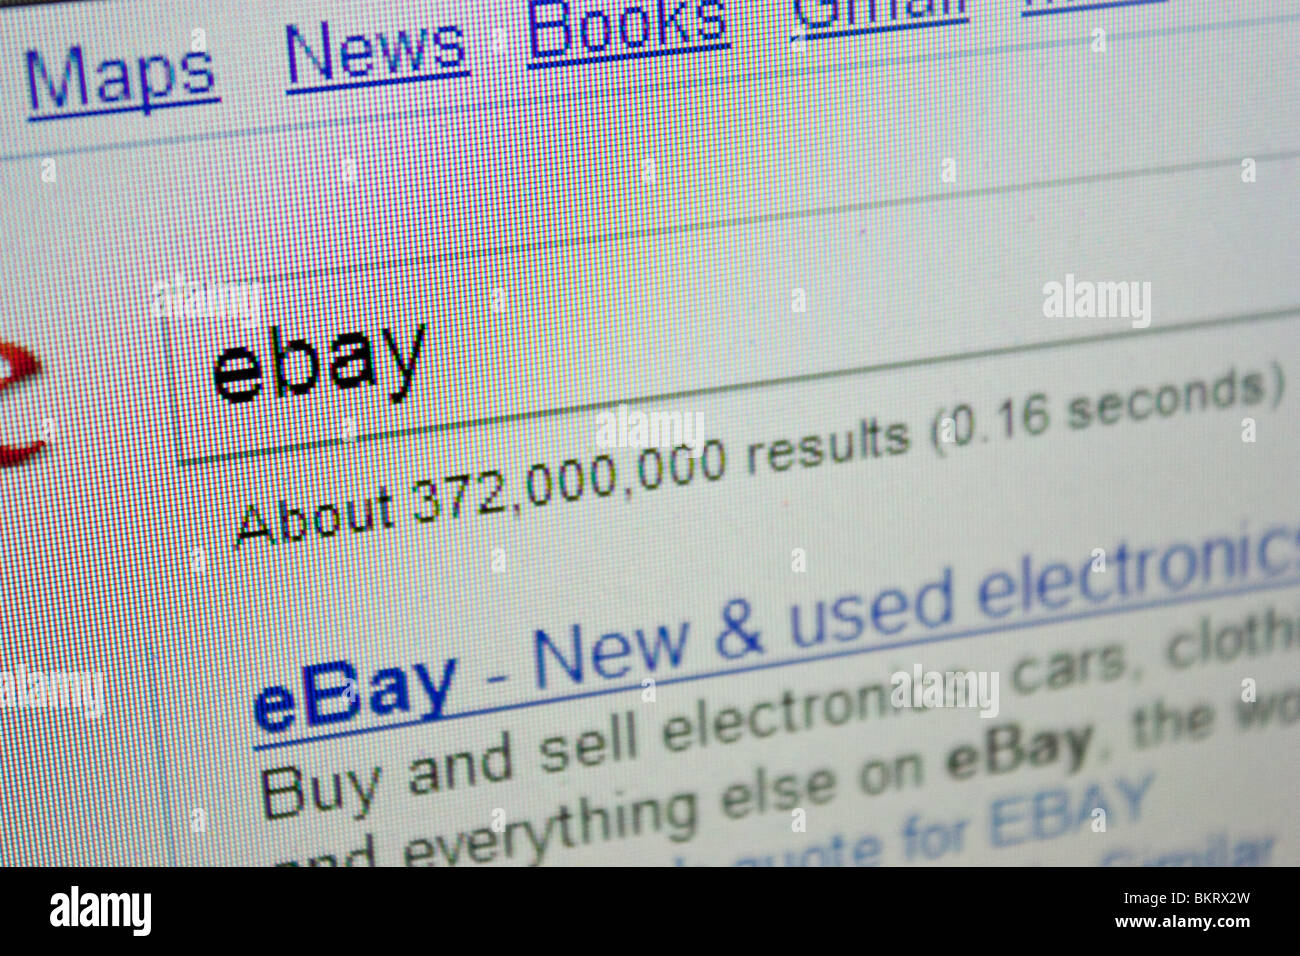 ebay auction website internet search buying - Stock Image